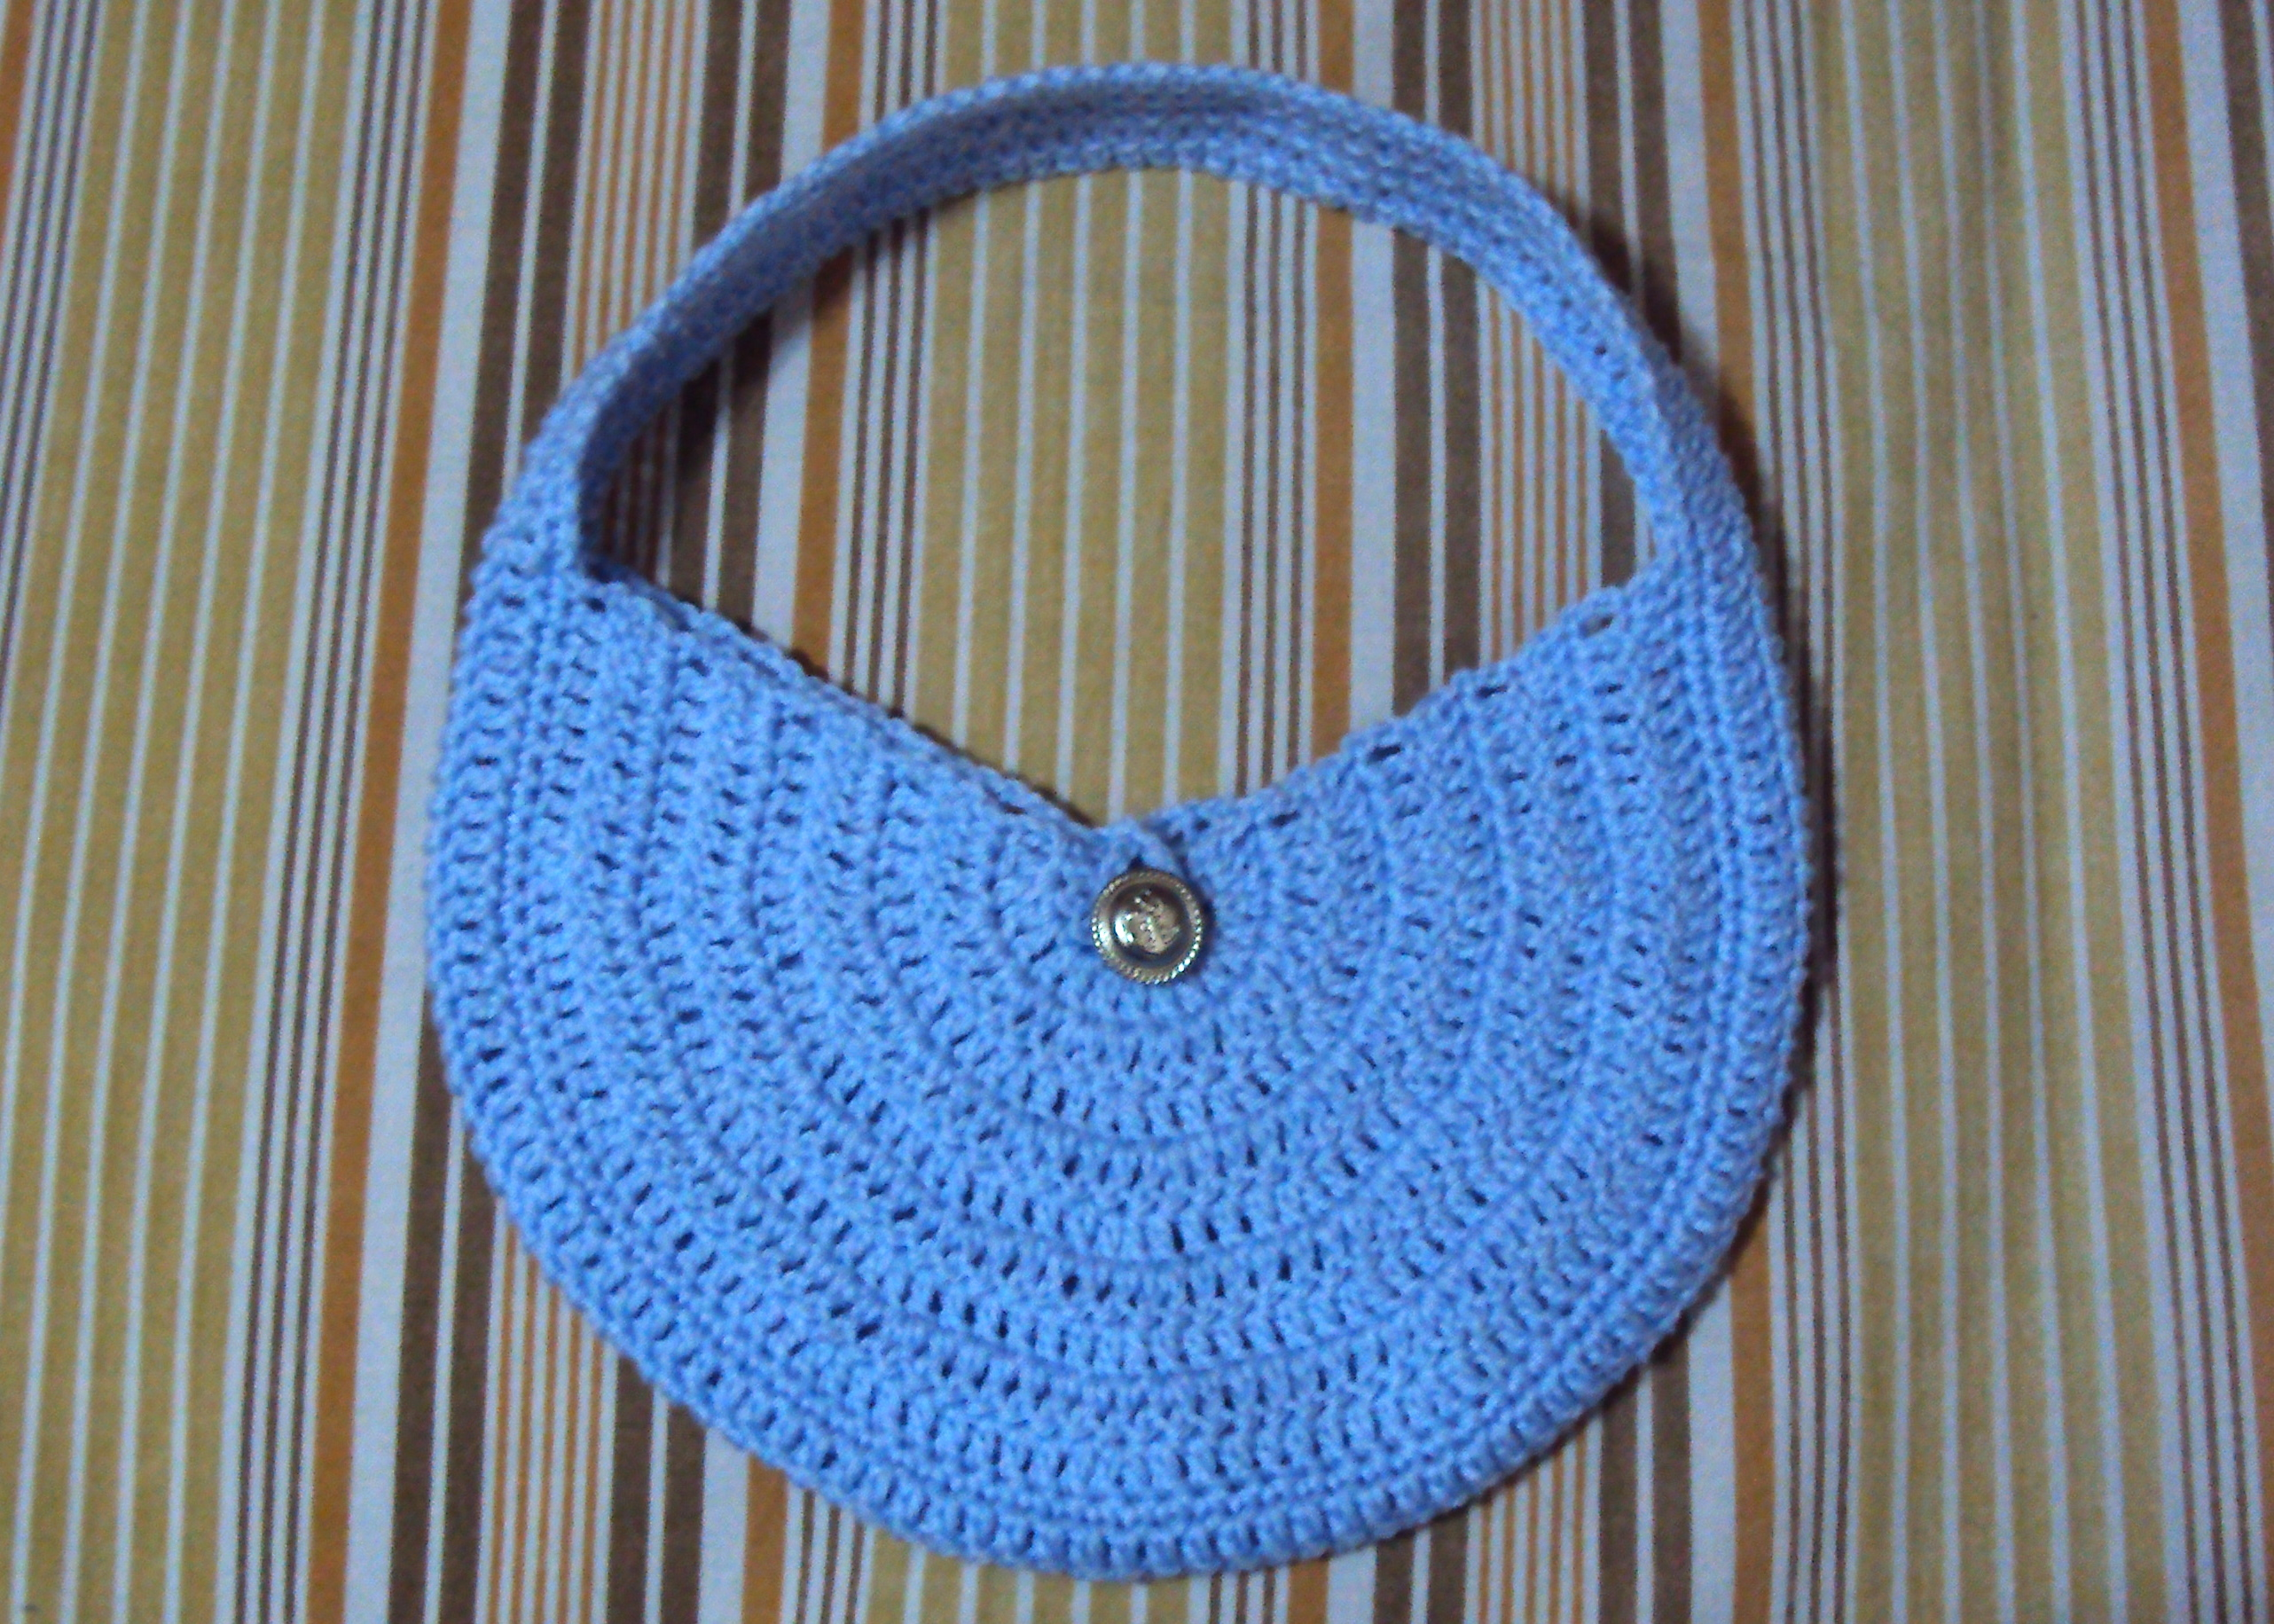 Purse Patterns | Tote Bag Patterns | Free Crochet Patterns